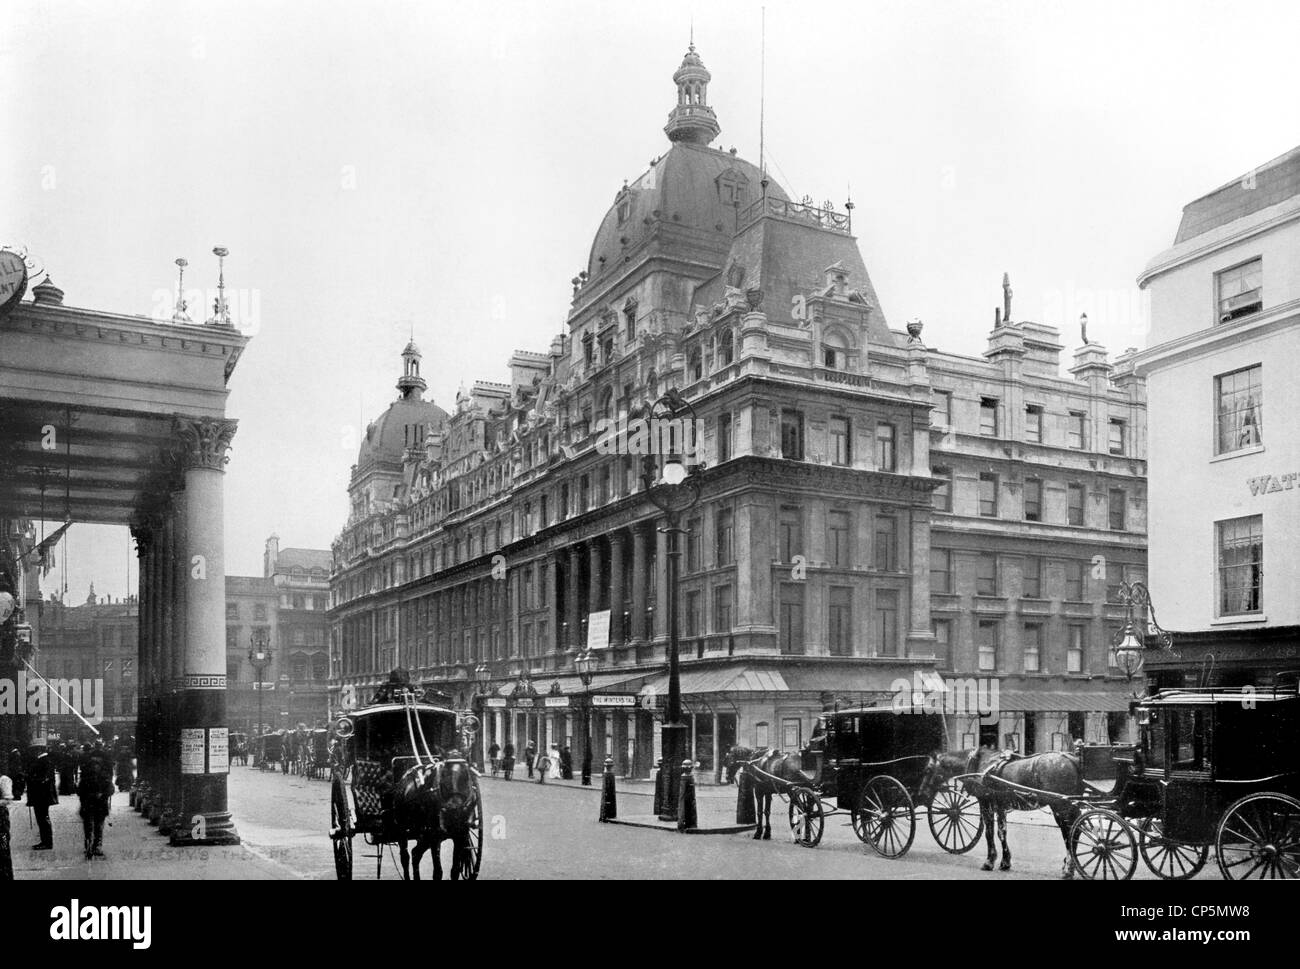 Historical photograph from the 19th century, Her Majesty' Theatre, Westminster, London, England, Europe - Stock Image